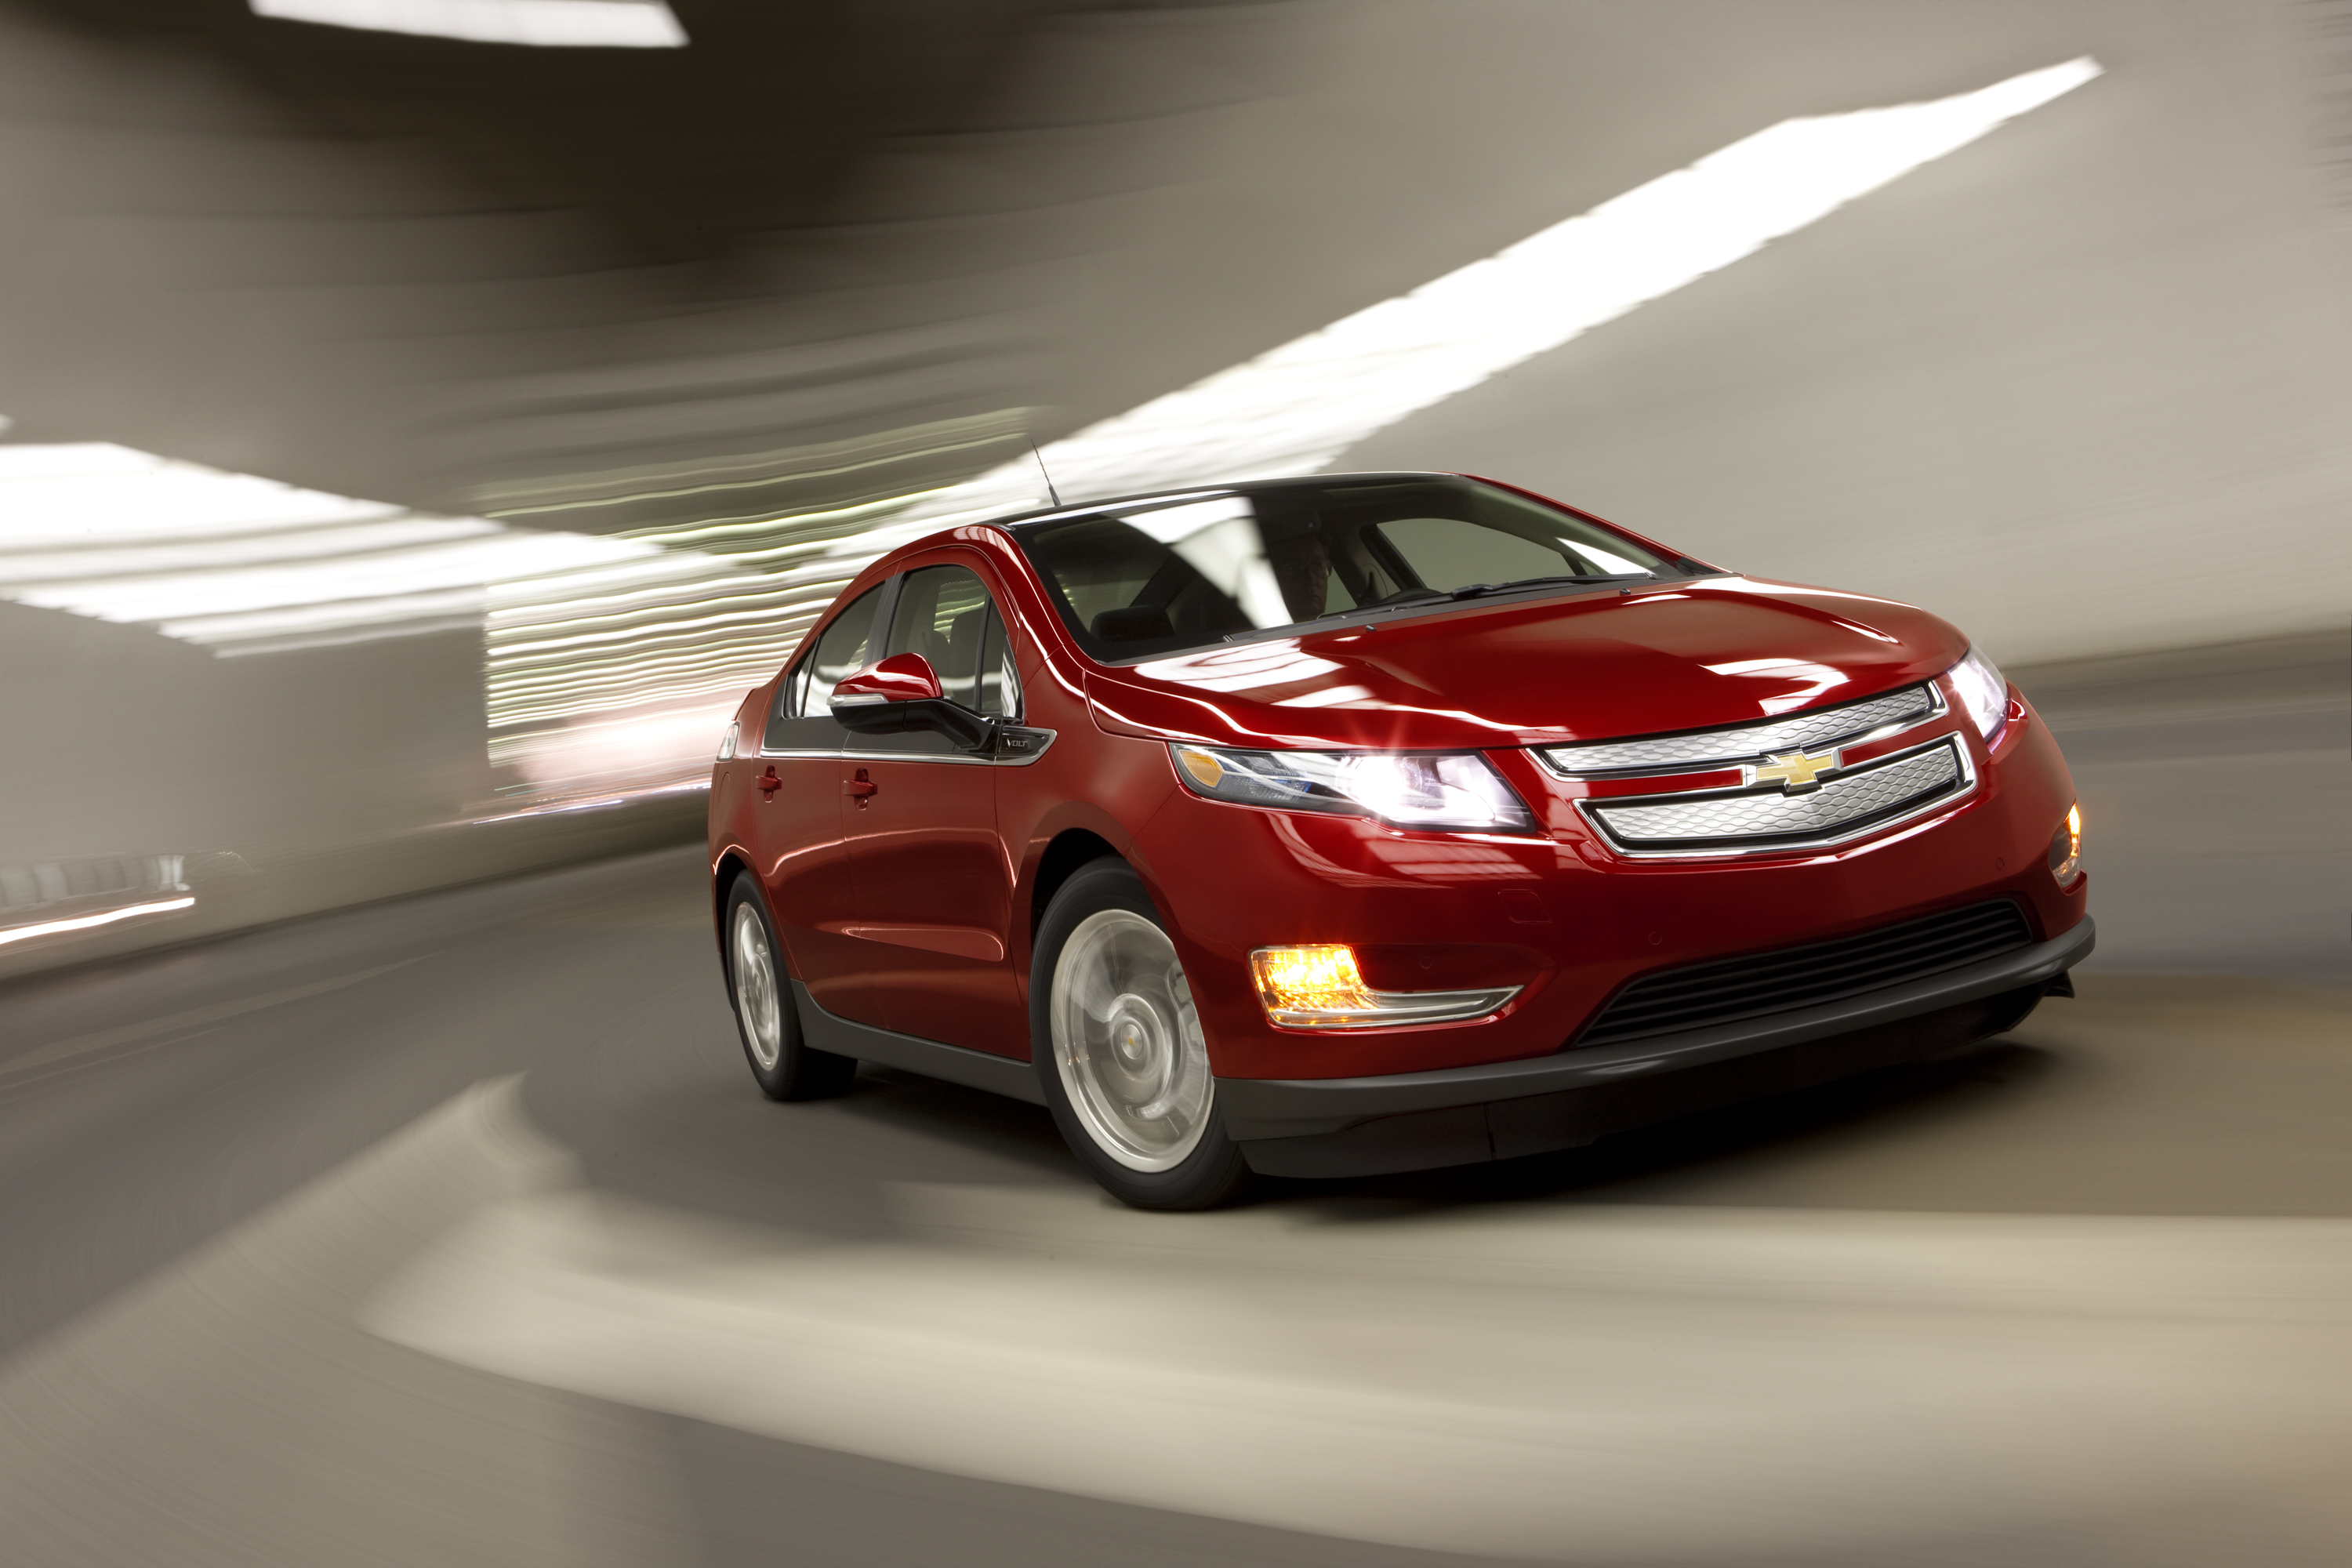 Re)introducing the Chevy Volt